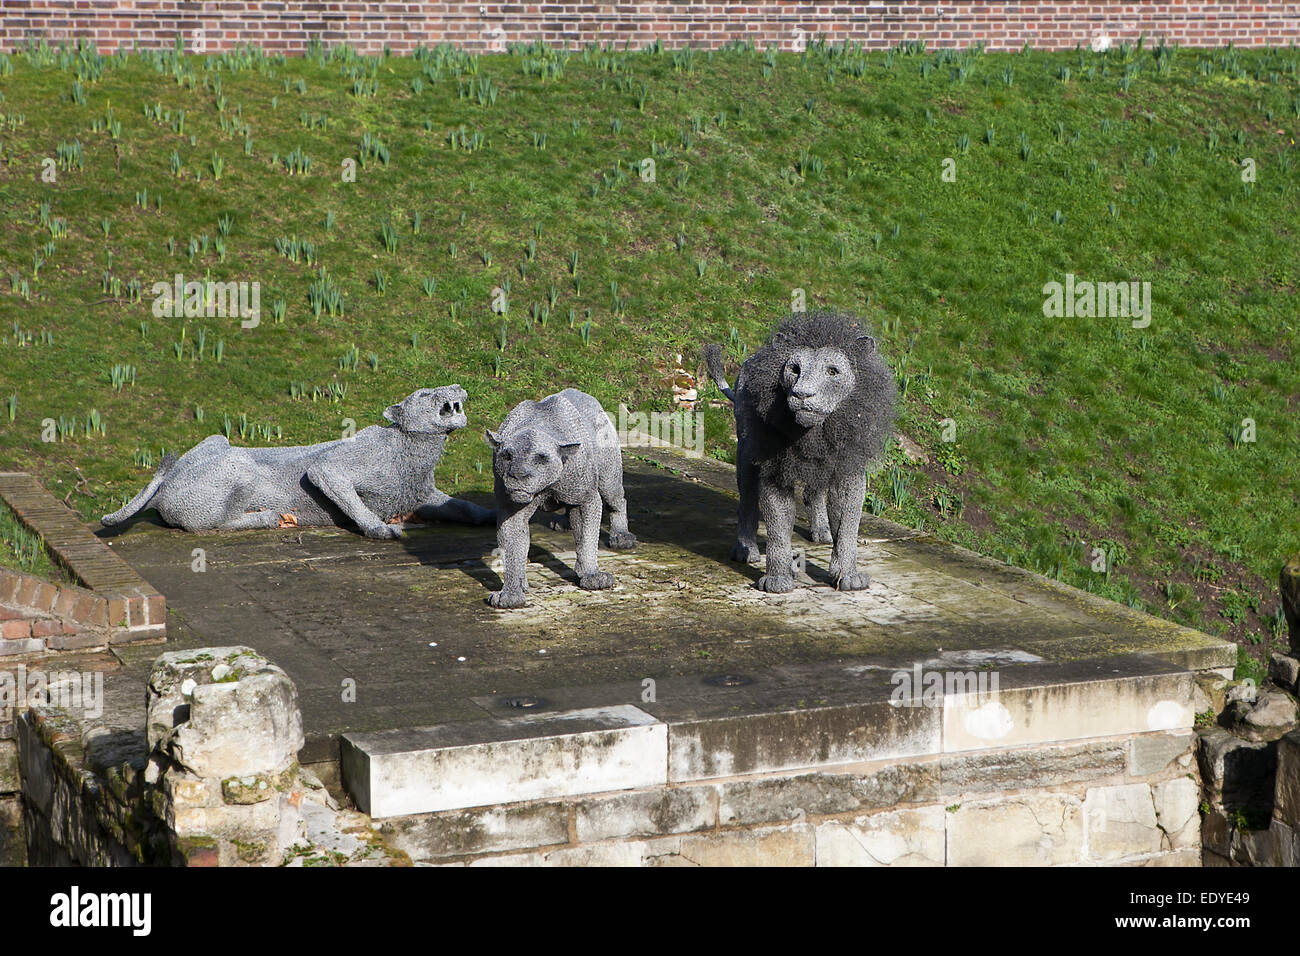 London - October 17, 2014: Lions made from wire mesh by Kendra Haste at the Tower of London - Stock Image